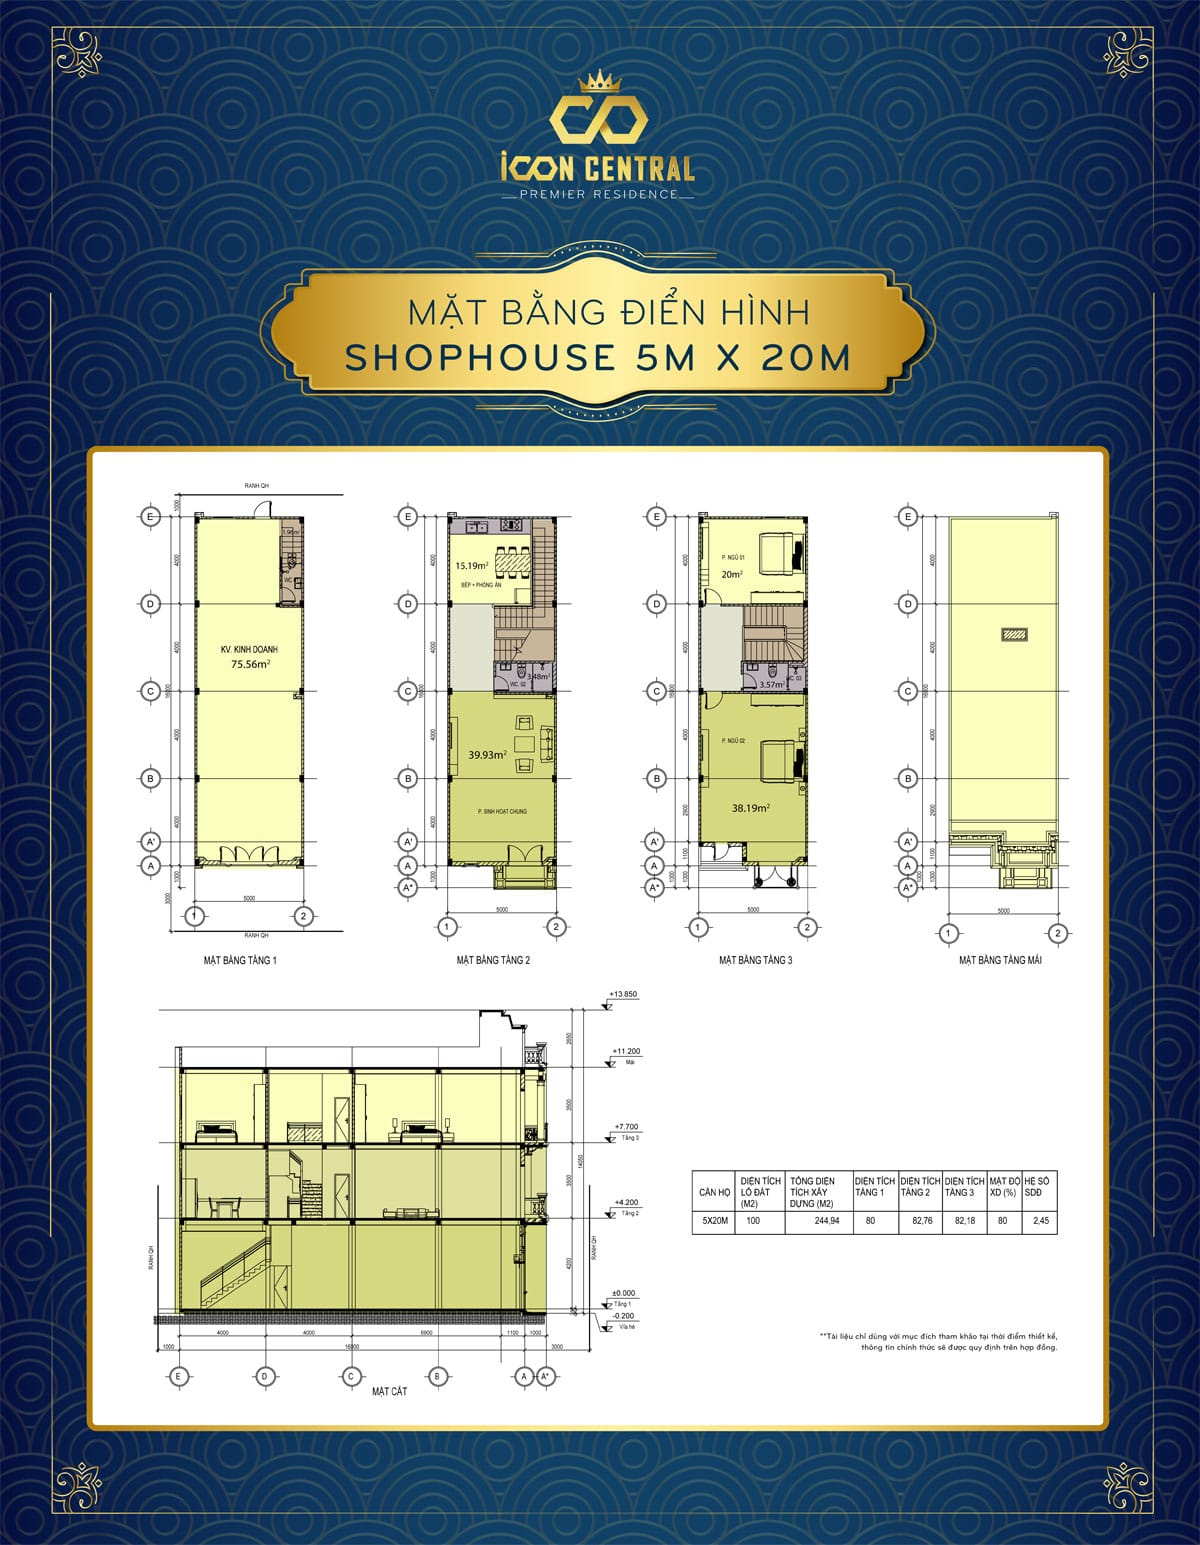 mat bang dien hinh shophouse 5x 20m icon central - SHOP OFFICE ICON CENTRAL DĨ AN BÌNH DƯƠNG